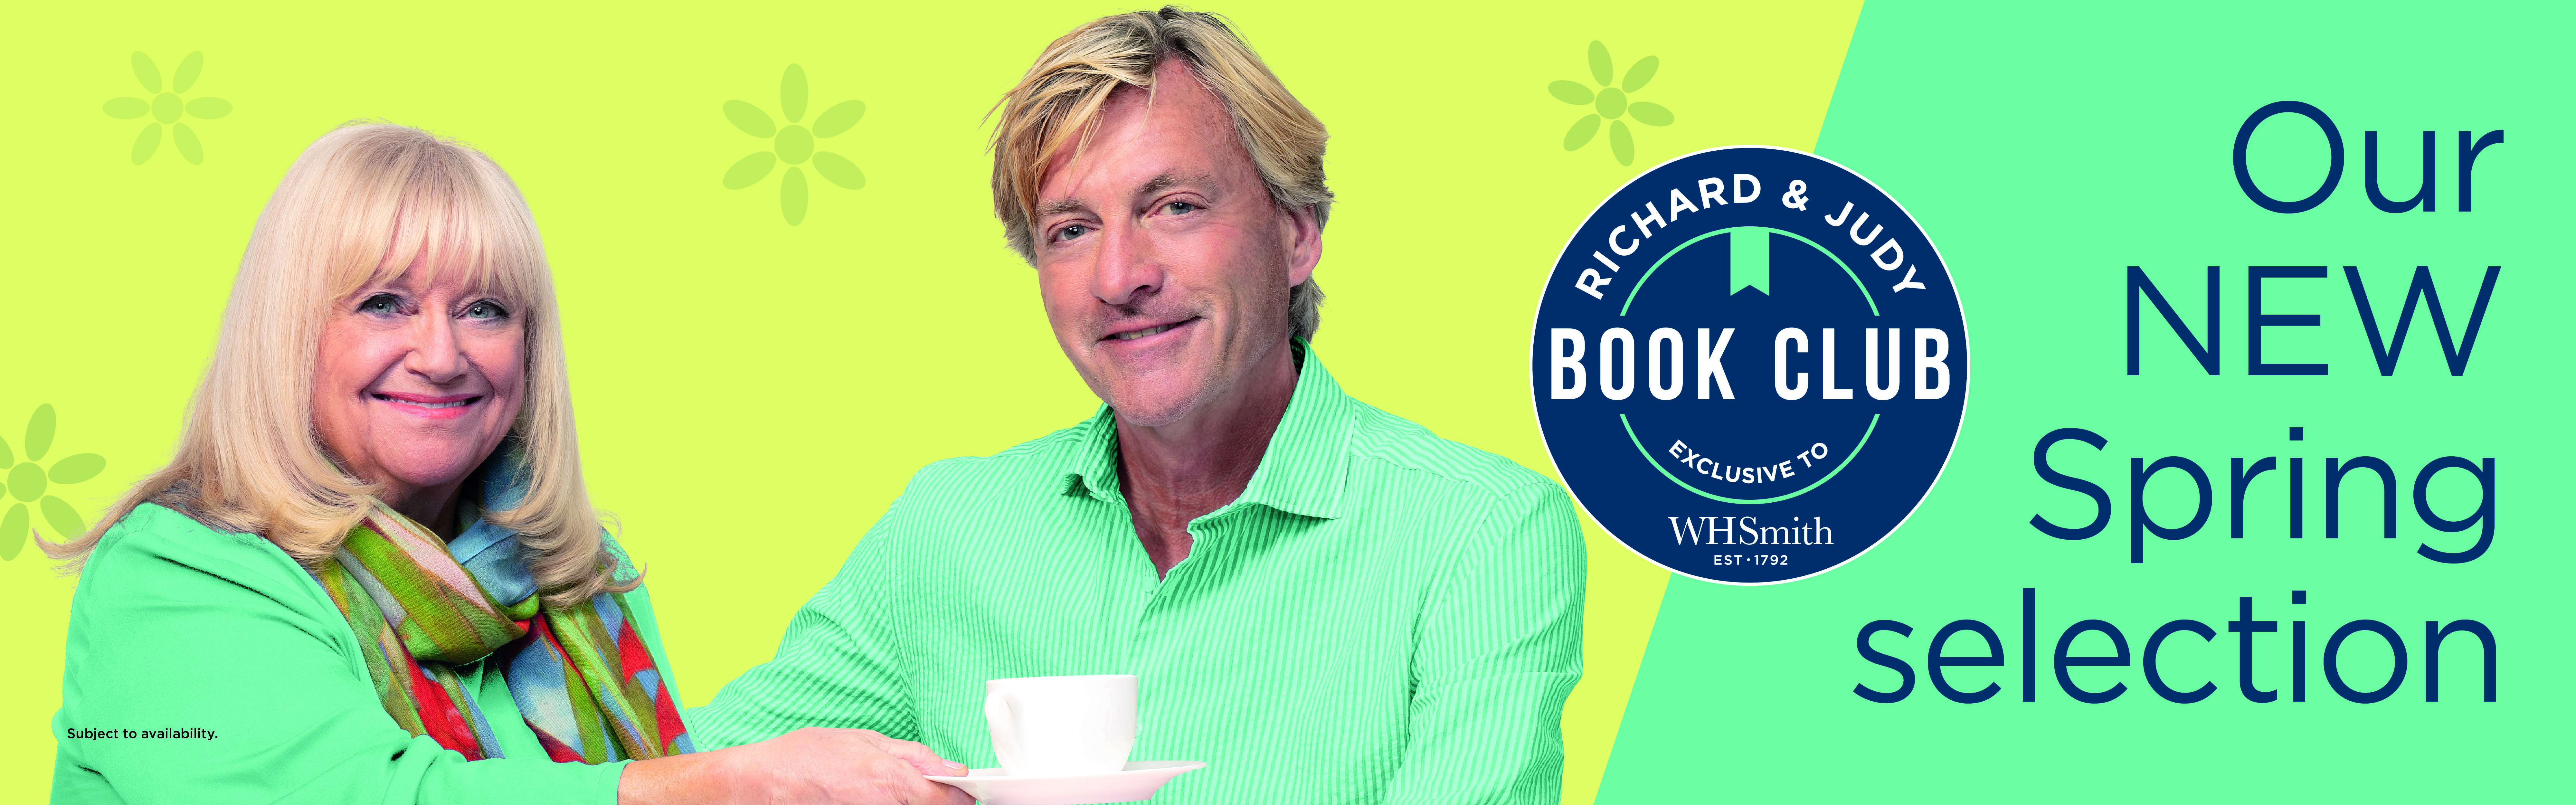 The Richard and Judy Spring Book Club 2021